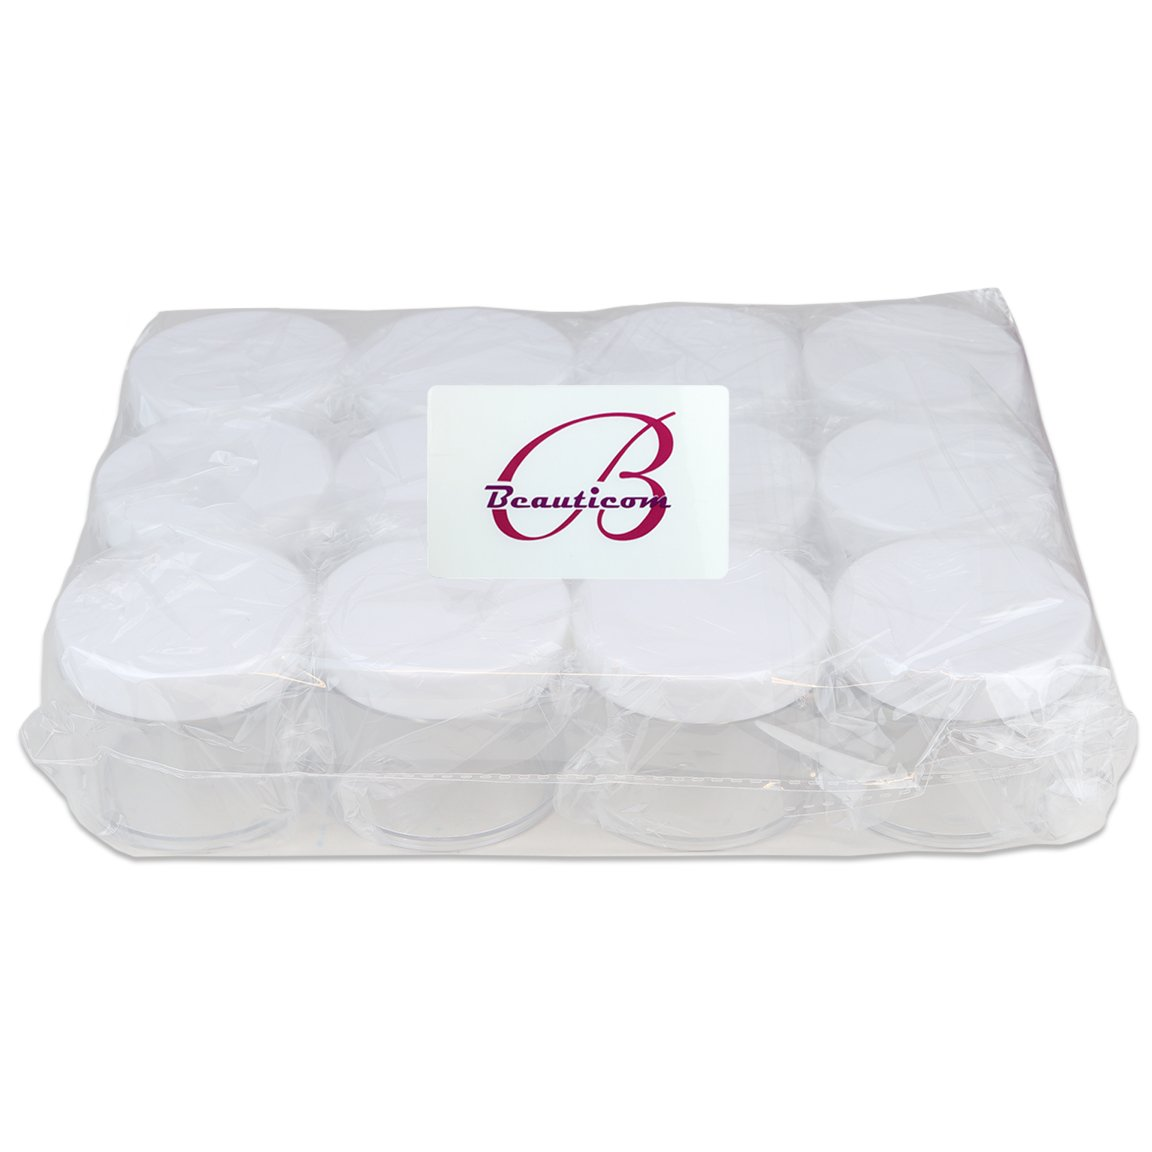 Beauticom 60 Grams/60 ML (2 Oz) Round Clear Leak Proof Plastic Container Jars with White Lids for Travel Storage Makeup Cosmetic Lotion Scrubs Creams Oils Salves Ointments (12 Jars) by Beauticom® (Image #4)